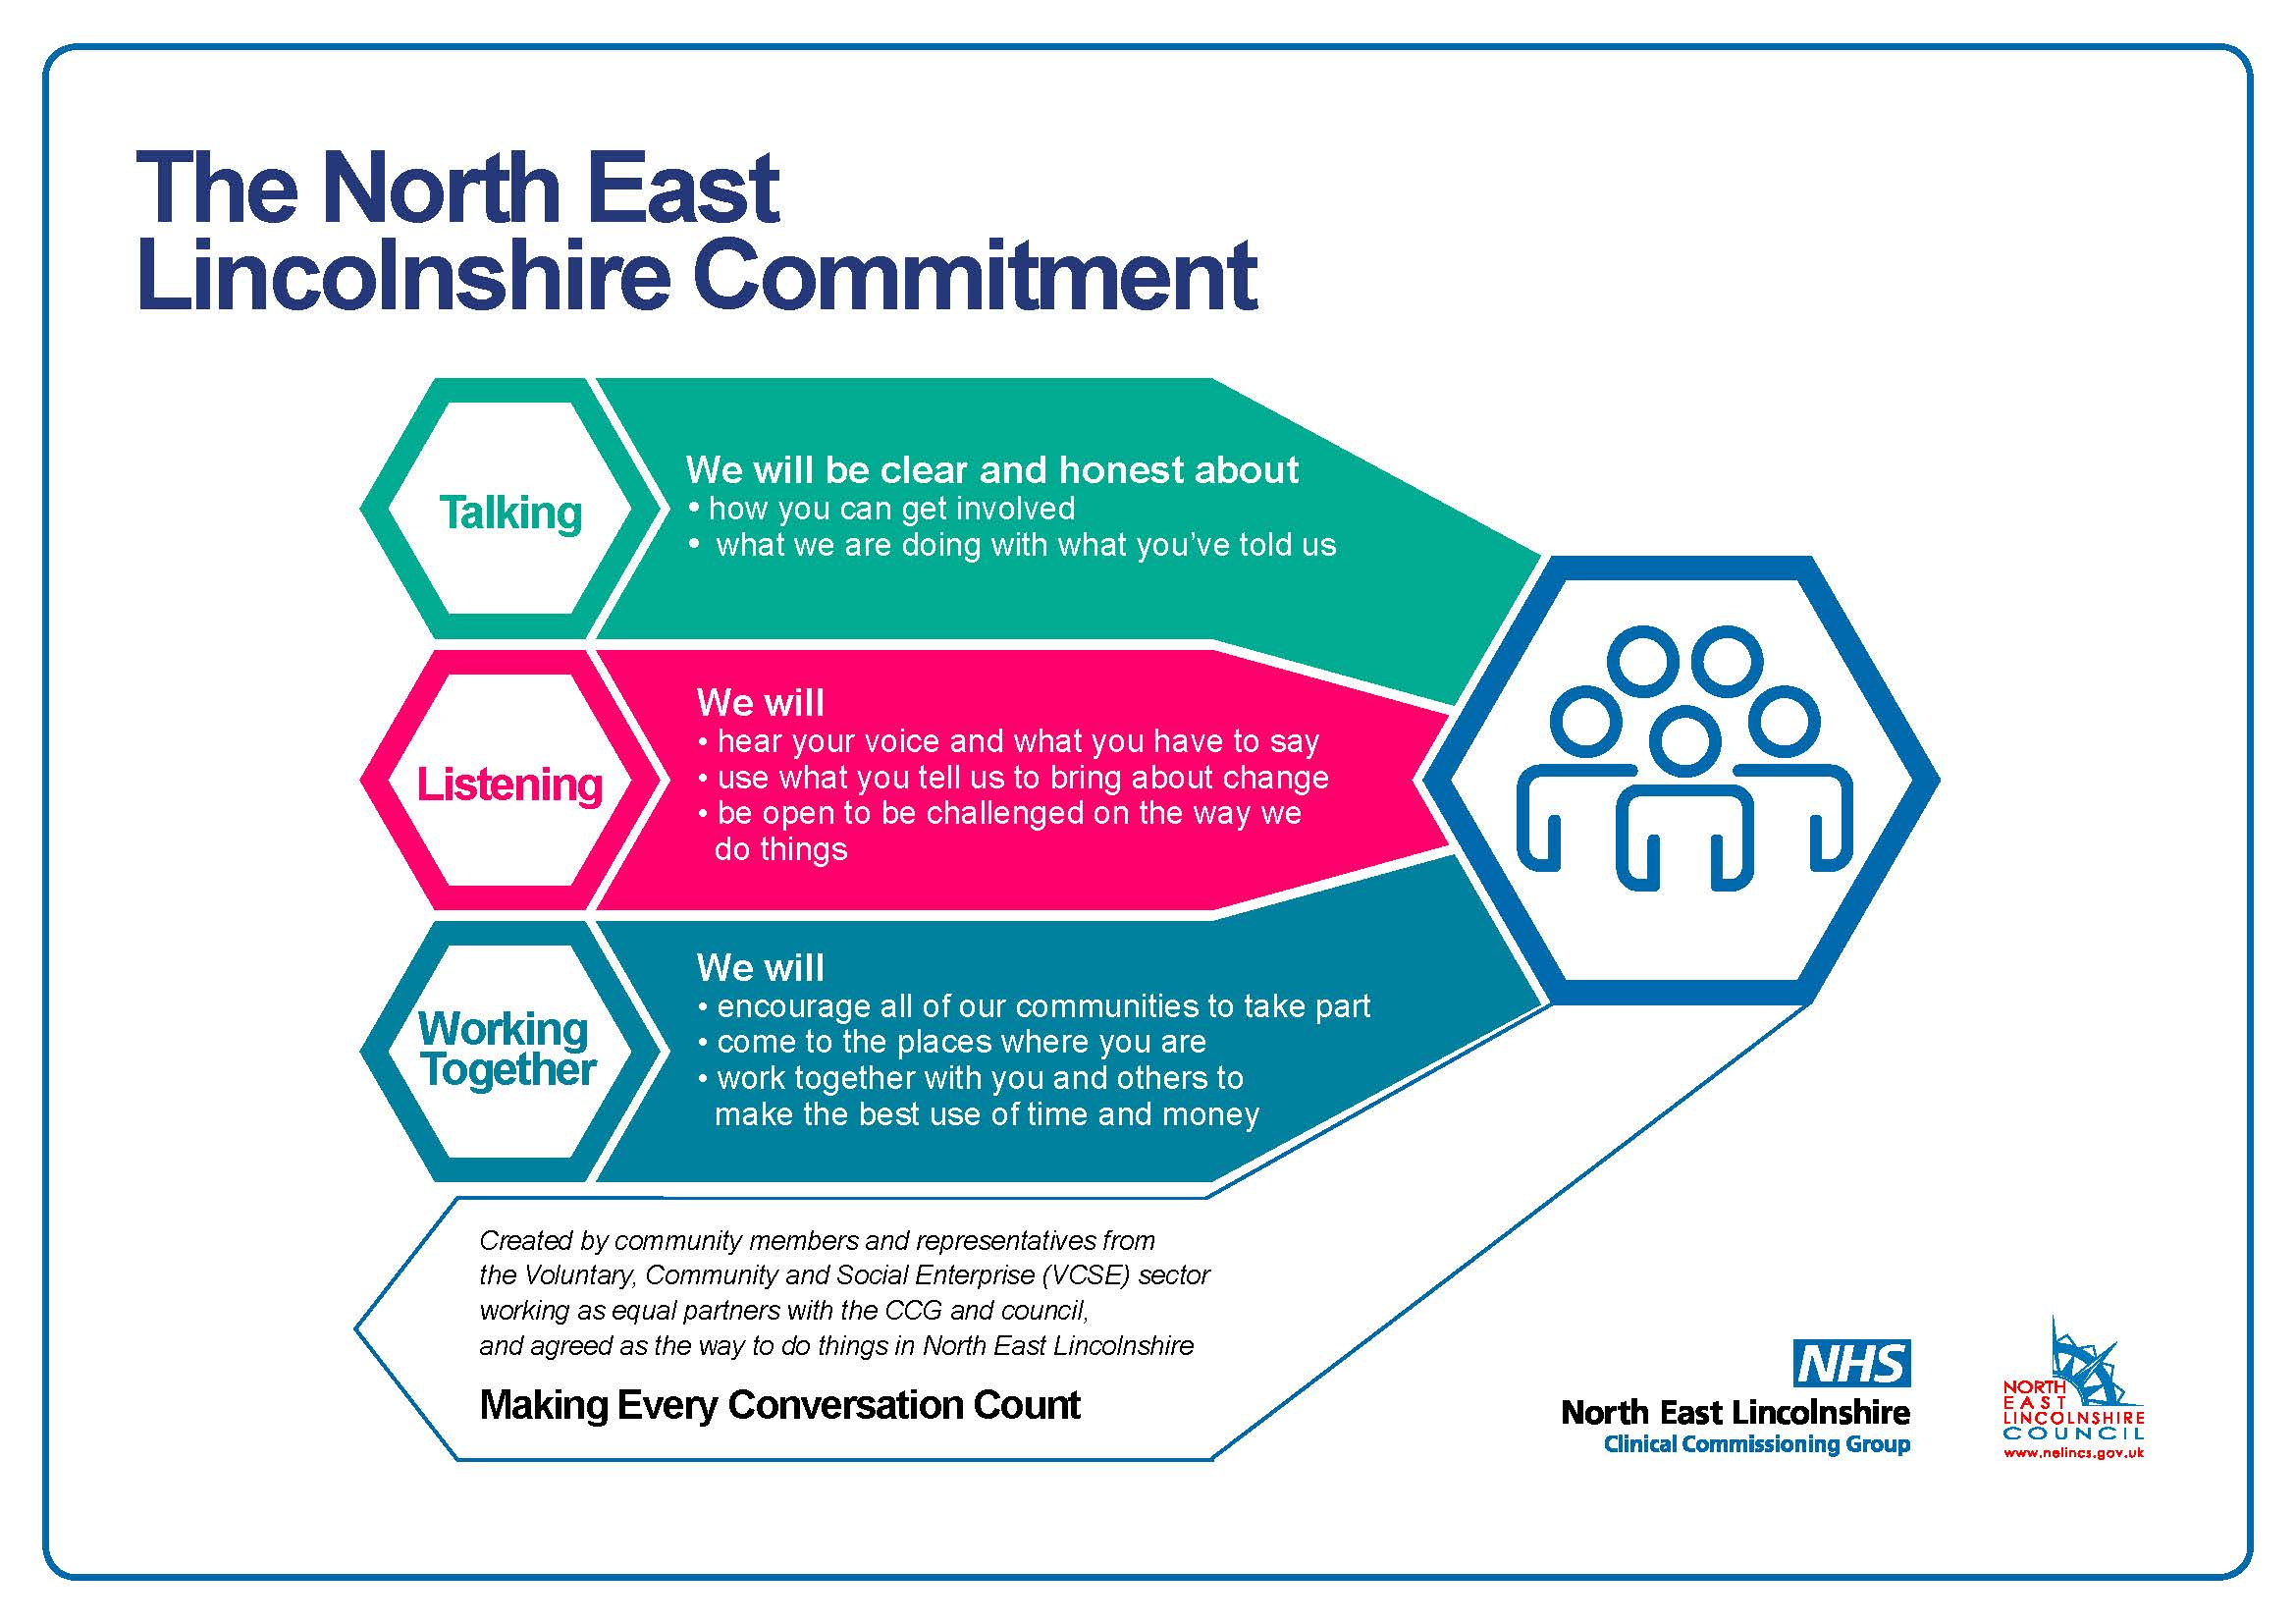 Diagram showing the North East Lincolnshire Commitment to Talking to the public, Listening to their views and working together